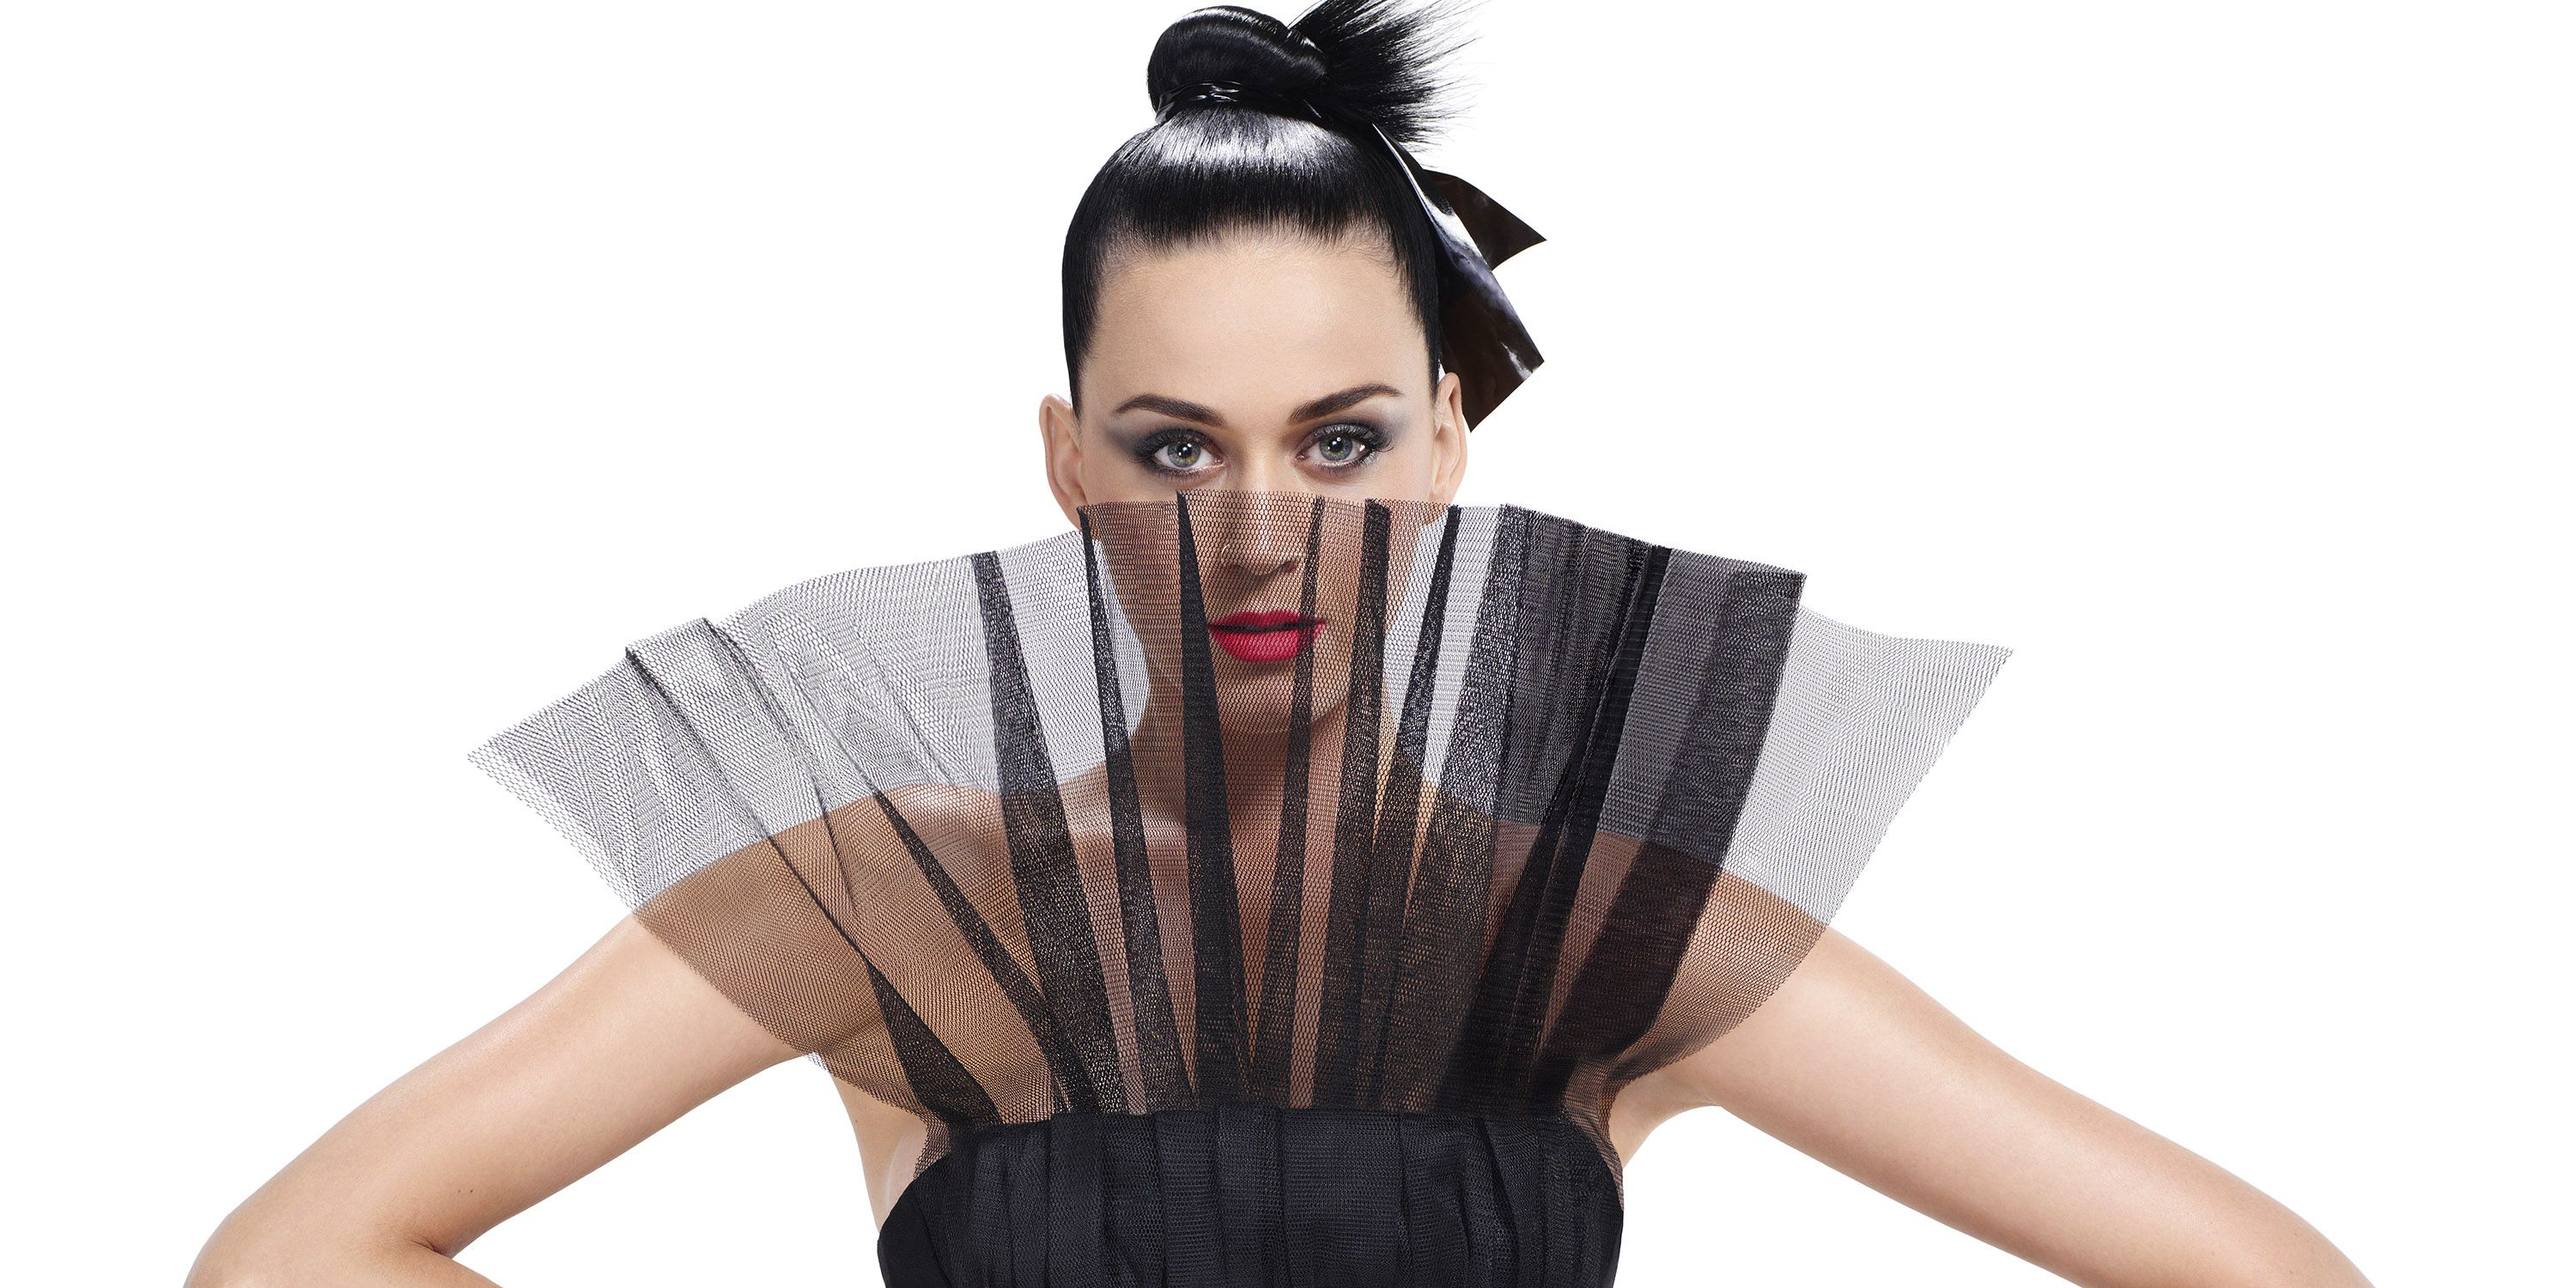 <p>Makeup artist Tom Pecheux created Katy Perry's glamorous look for <em>BAZAAR</em>'s September issue cover shoot by Carine Roitfeld and Jean-Paul Goude.<br></p>